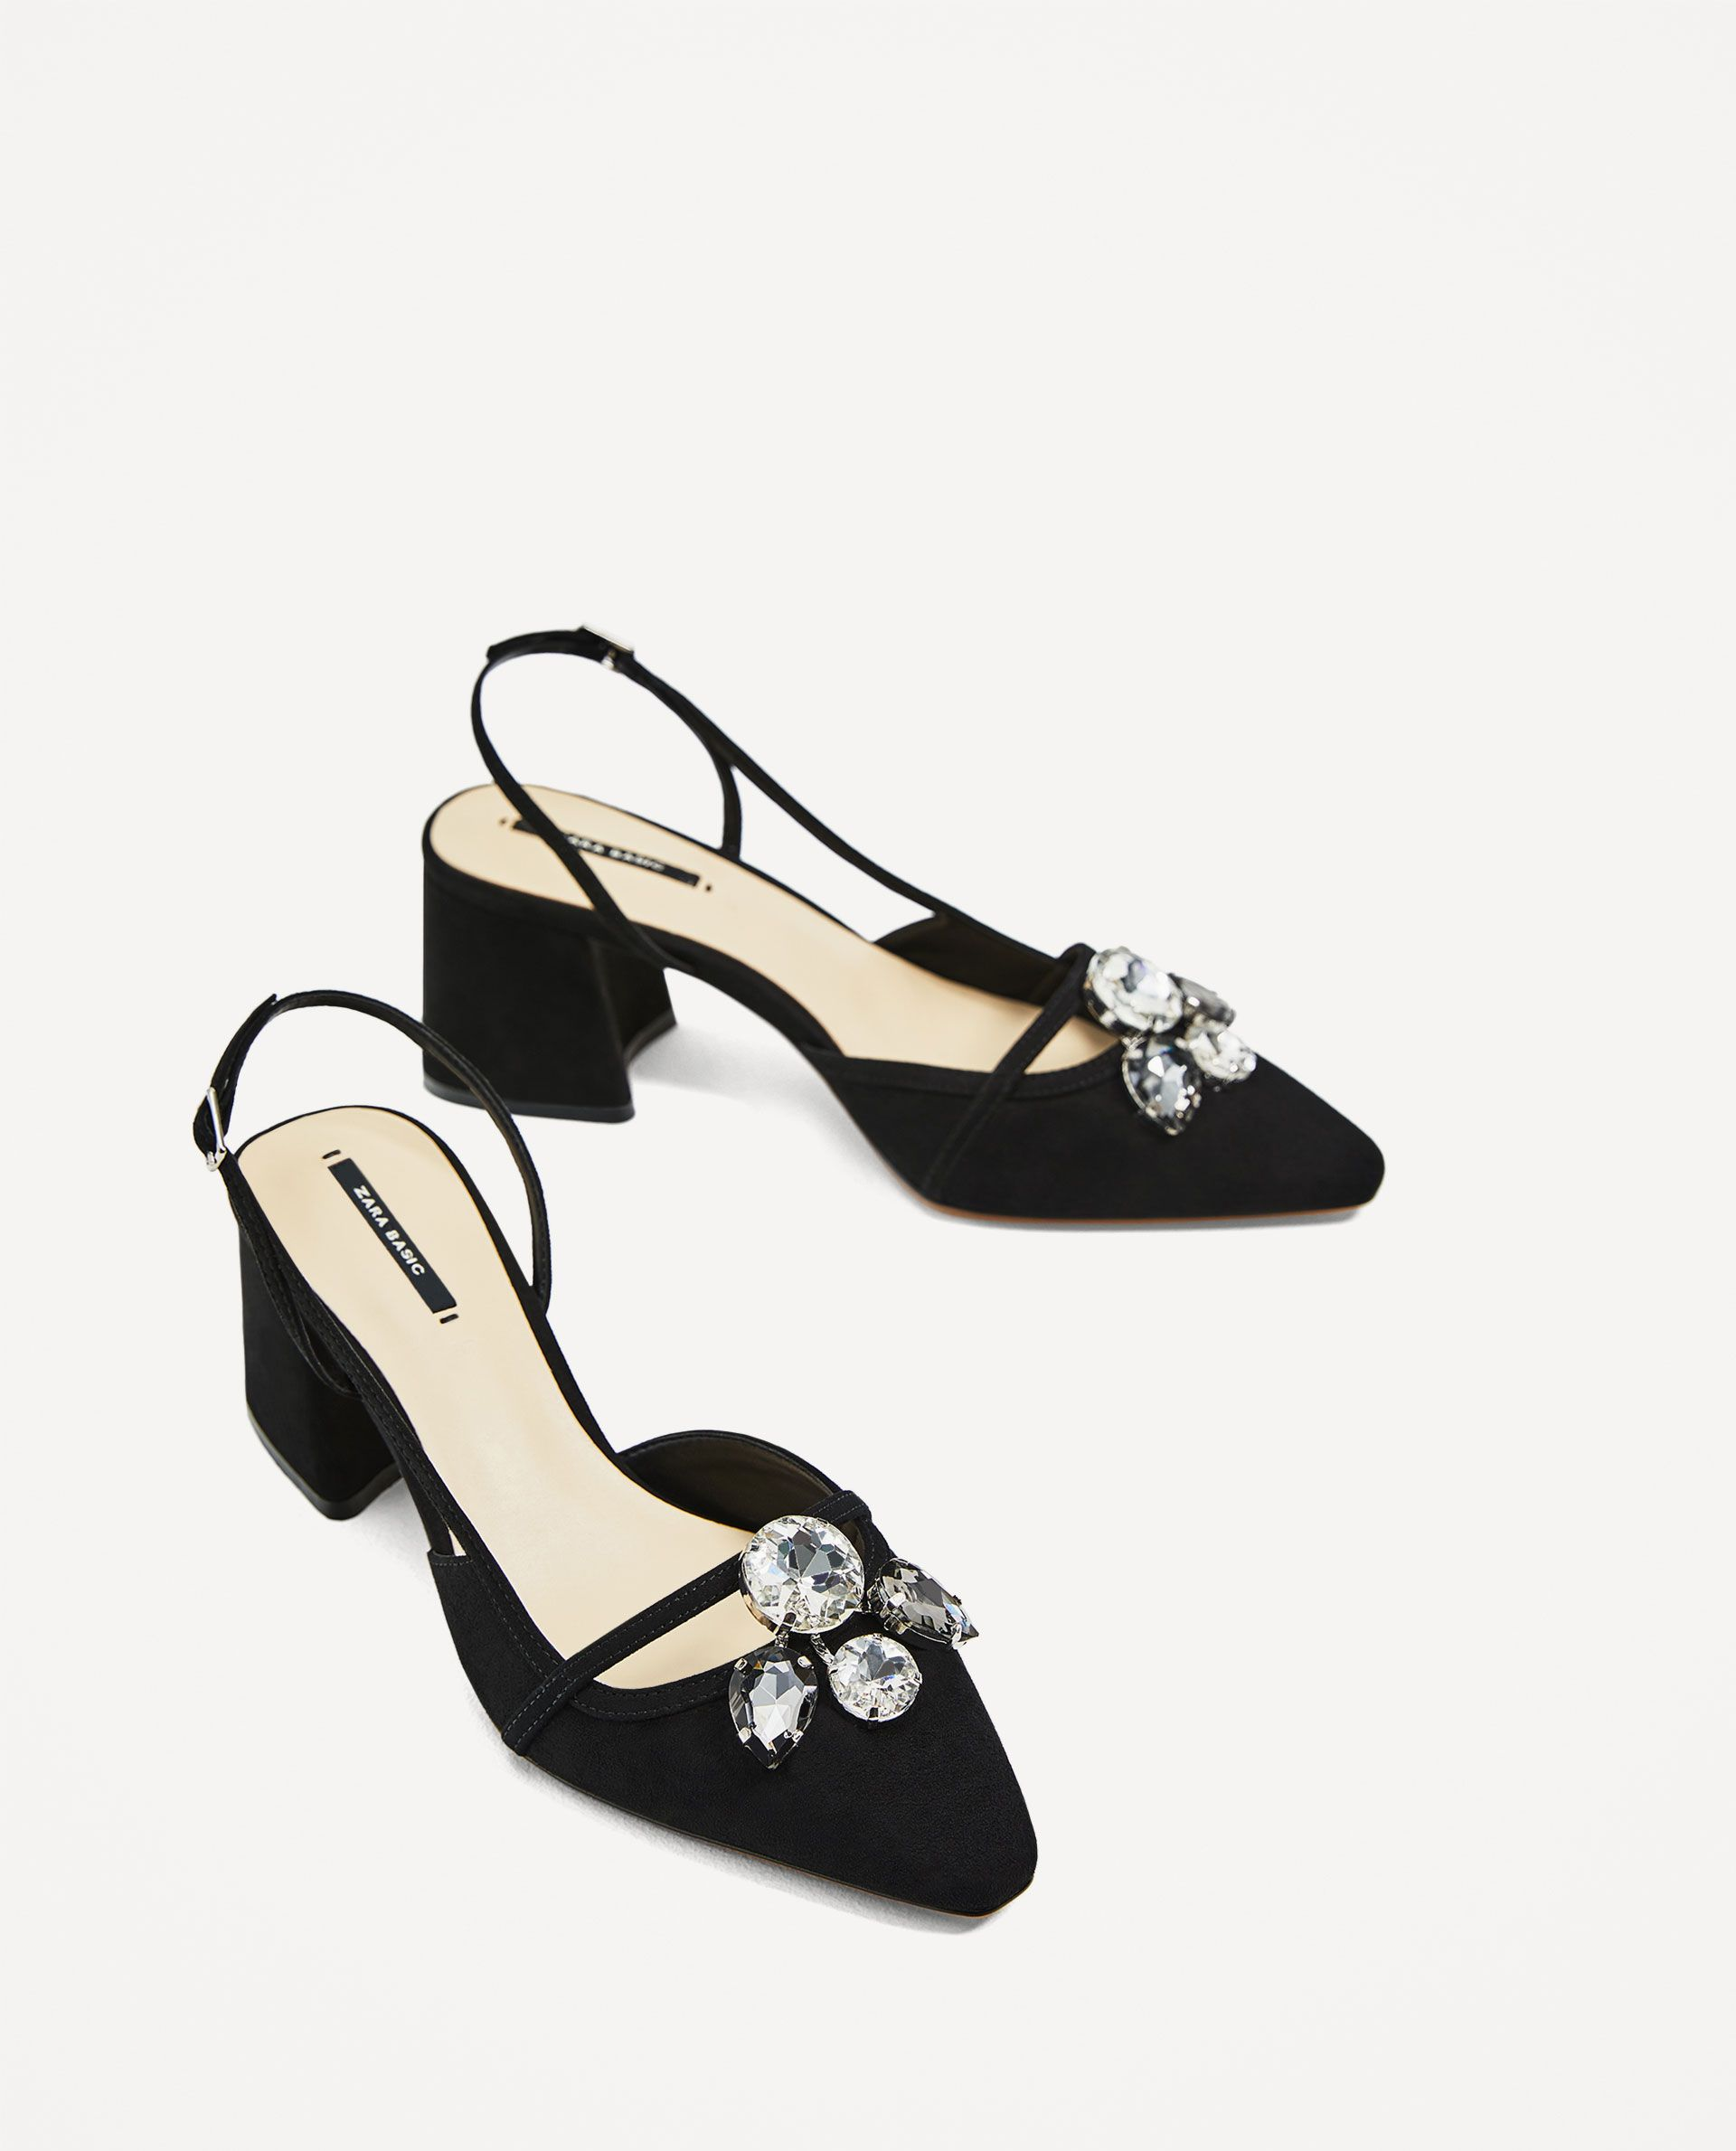 223b2770f67 Zara shoes - best Zara shoes in the UK